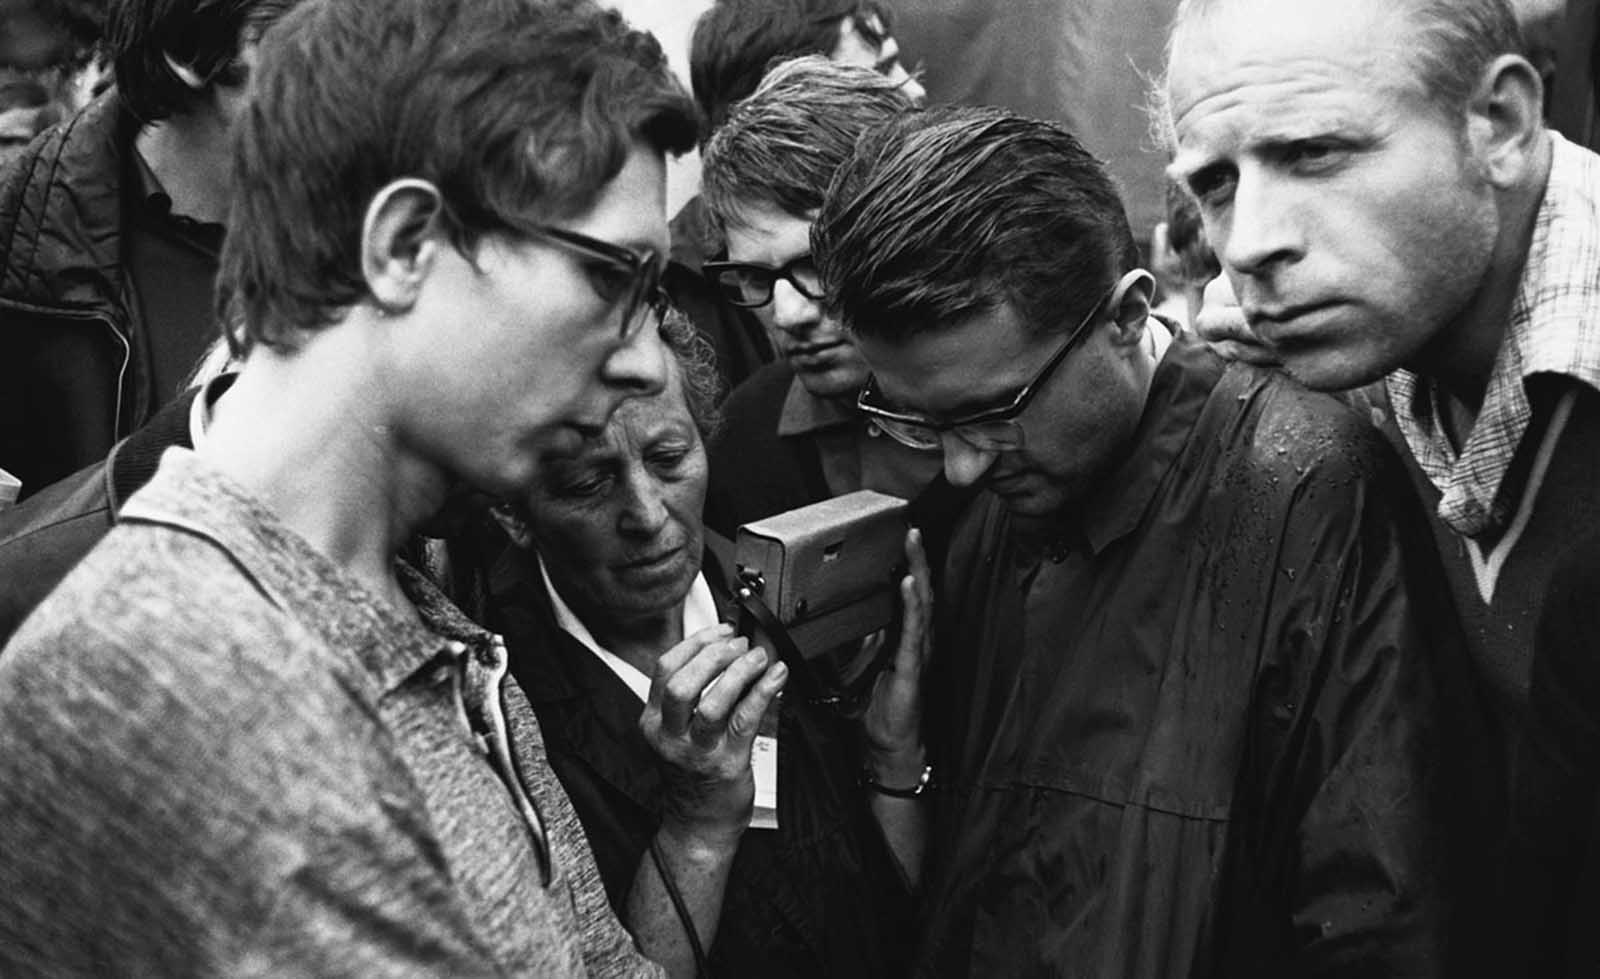 Czechoslovakians gather to listen to a transistor radio for news of the Soviet invasion and occupation on August 29, 1968.